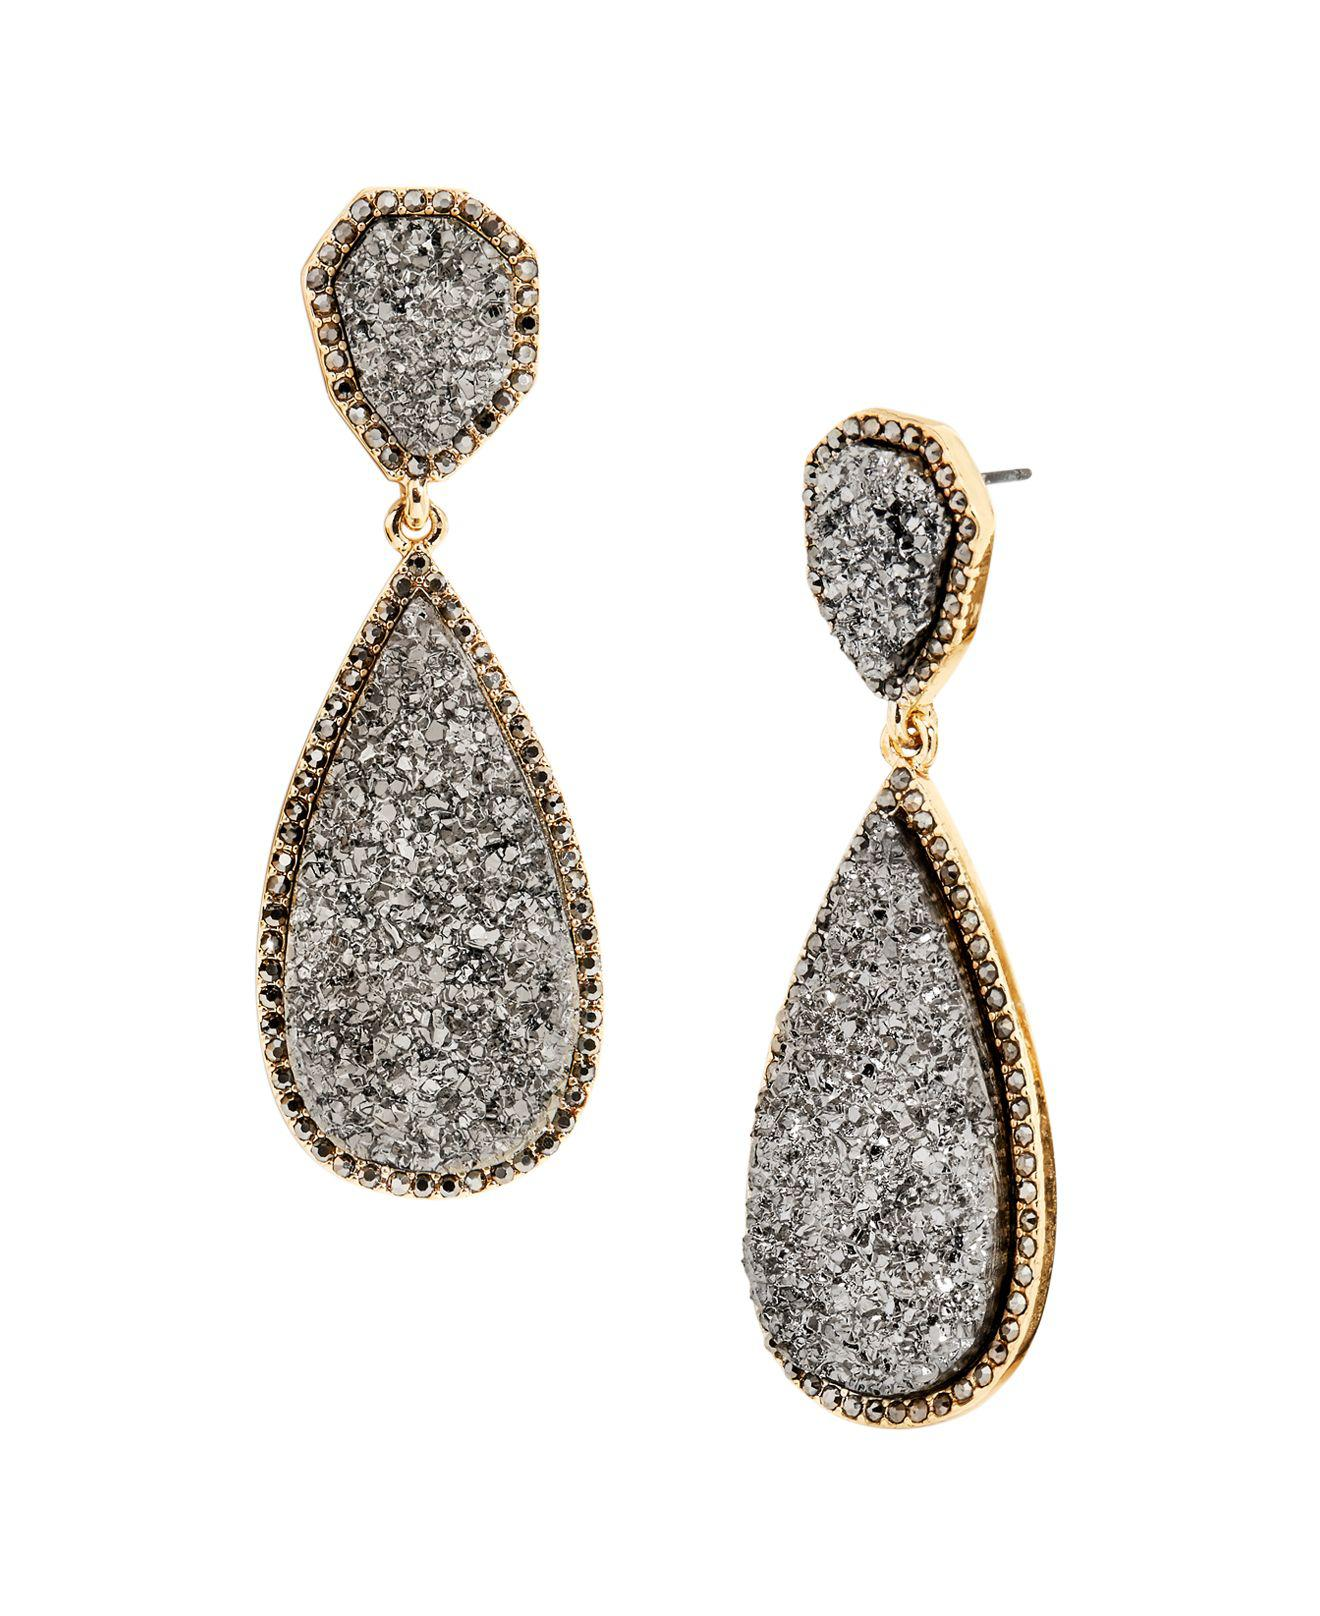 Baublebar Women S Gray Moonlight Druzy Earrings